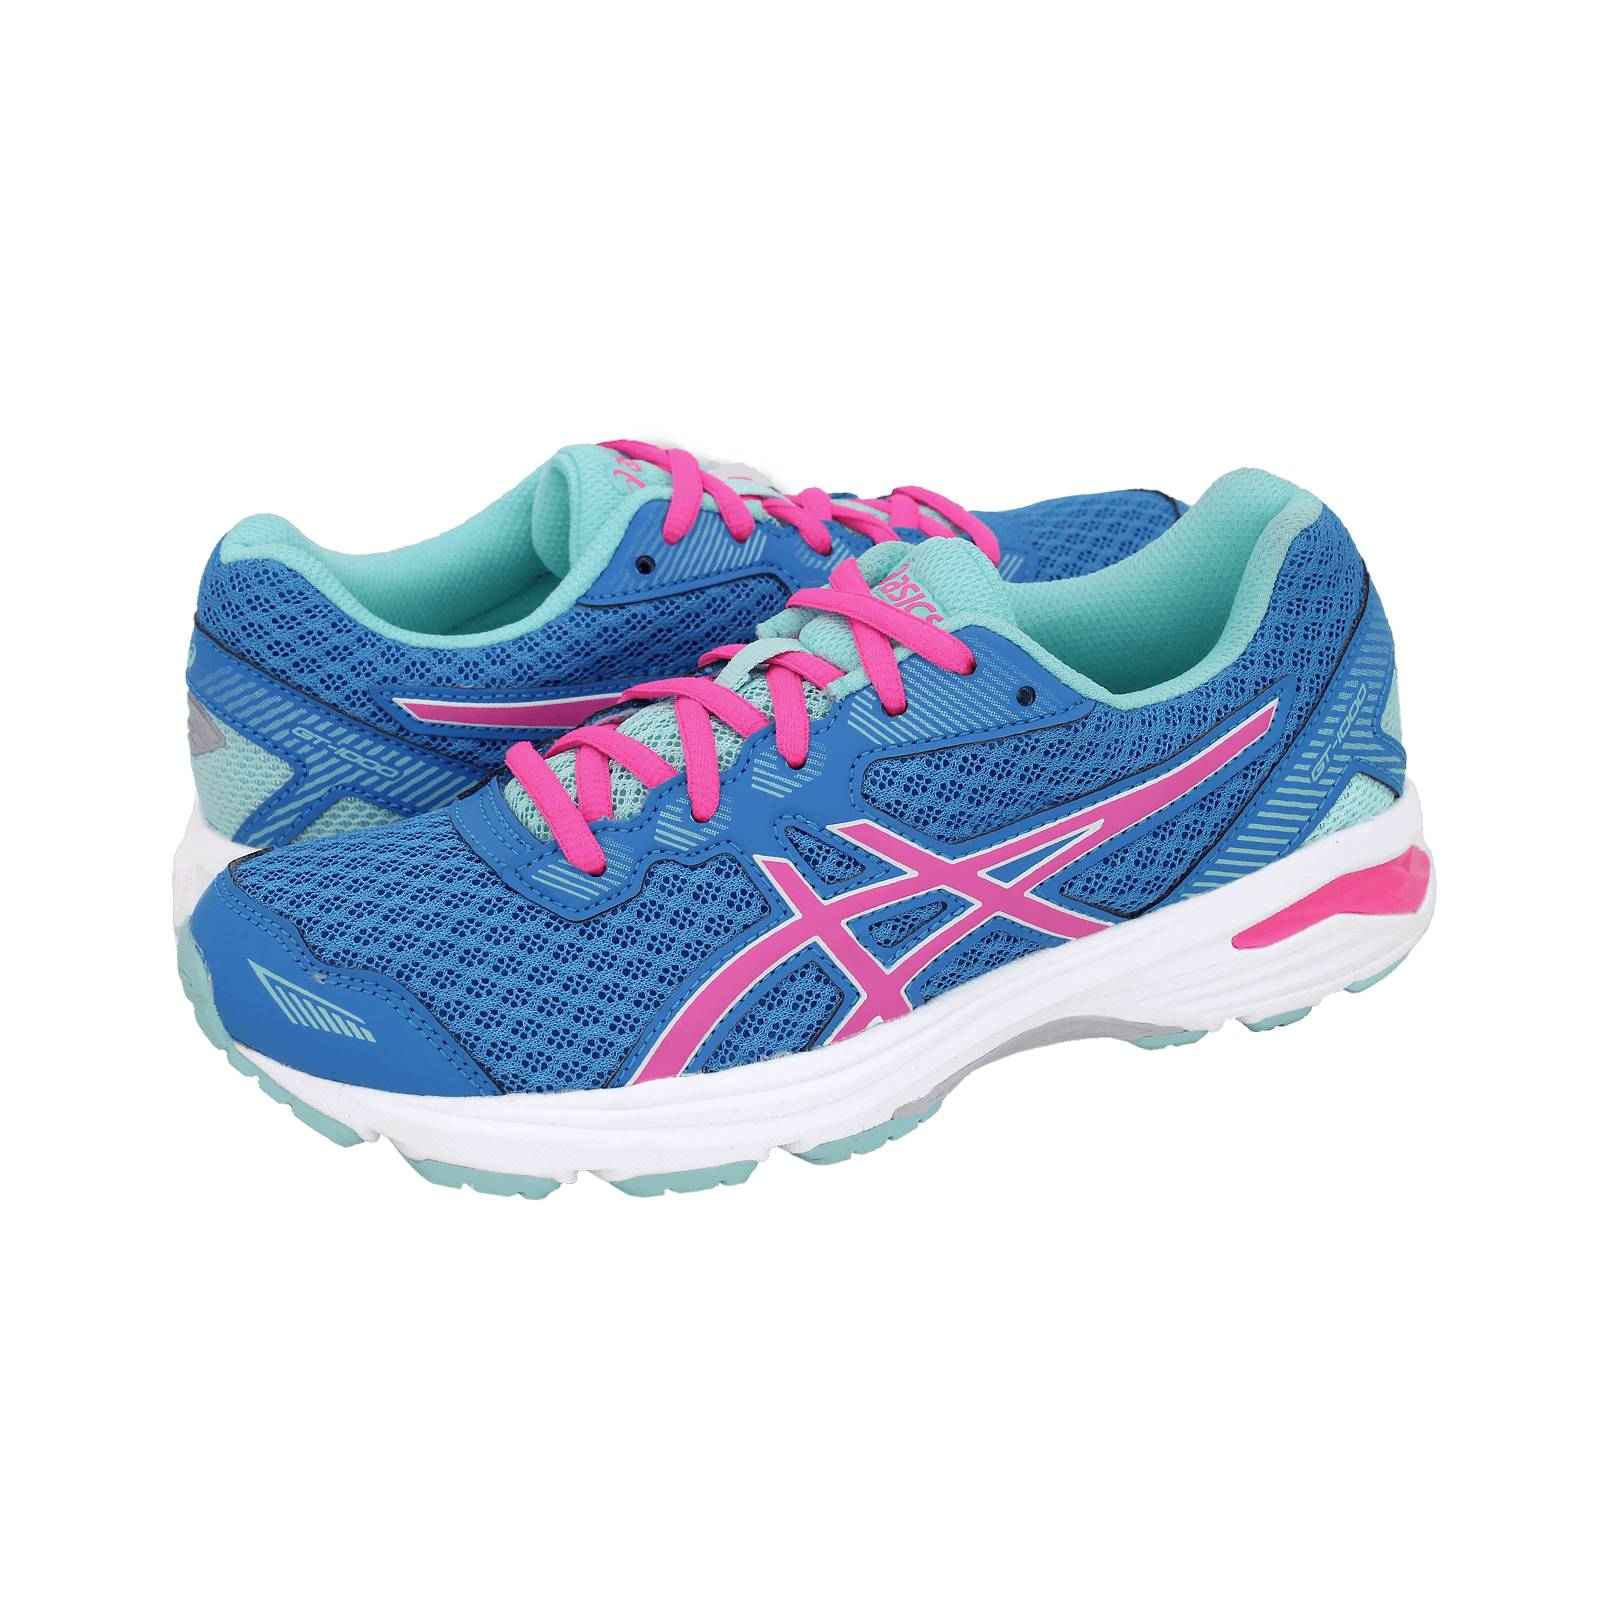 Excerpt peach knot  GT-1000 5 GS - Asics Athletic kids' shoes made of fabric and synthetic  leather - Gianna Kazakou Online